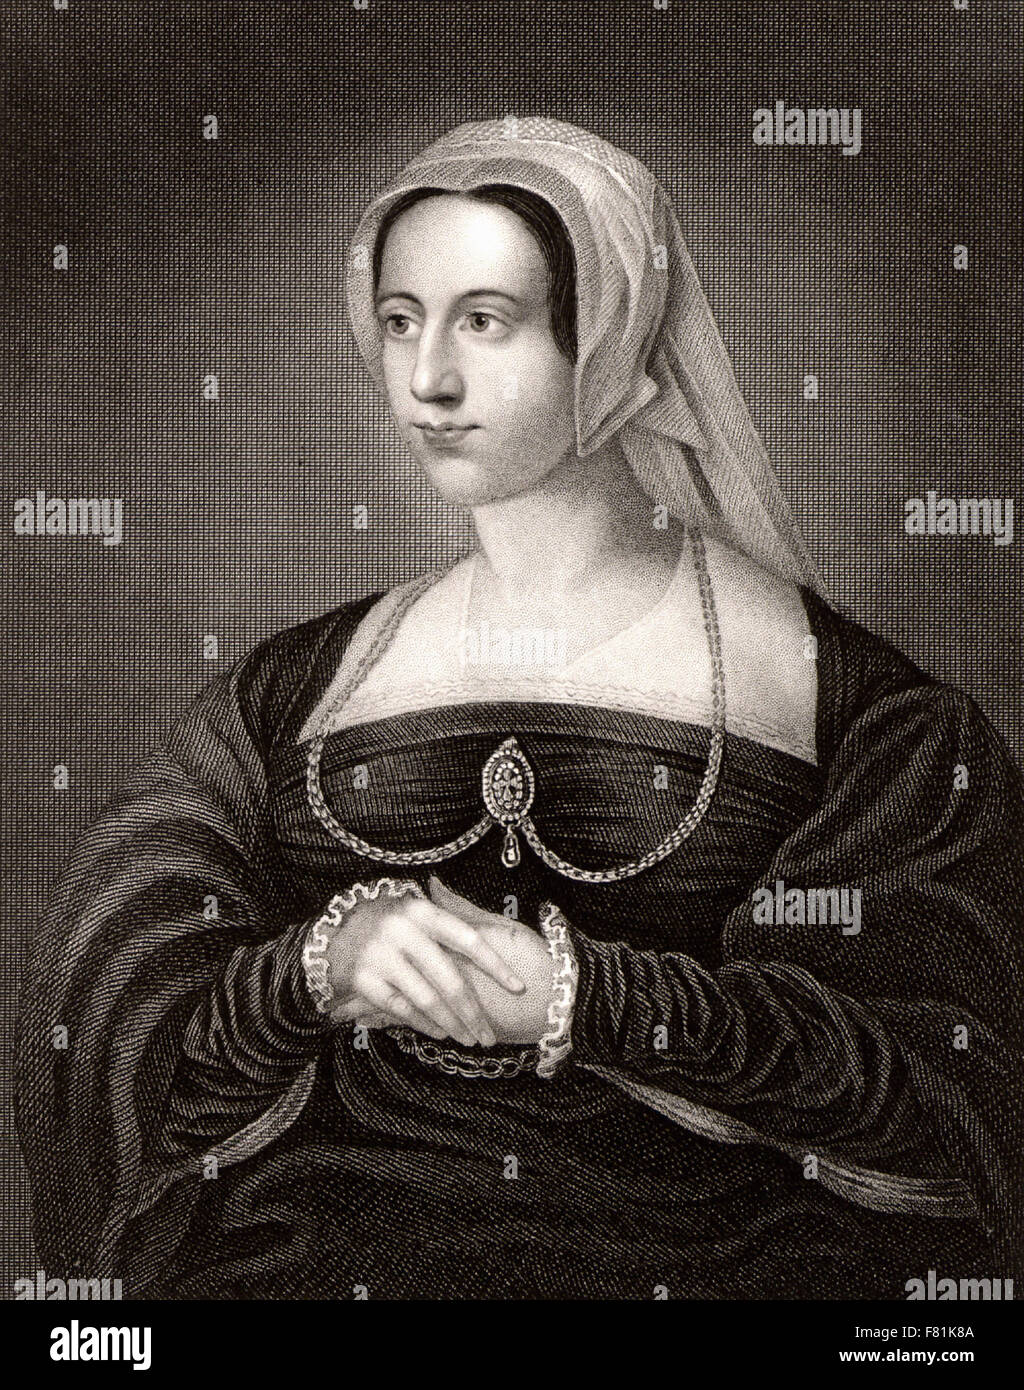 Catherine Parr  sixth queen of Henry VIII of England  and, after she had been widowed, wife of Thomas Seymour - - Stock Image